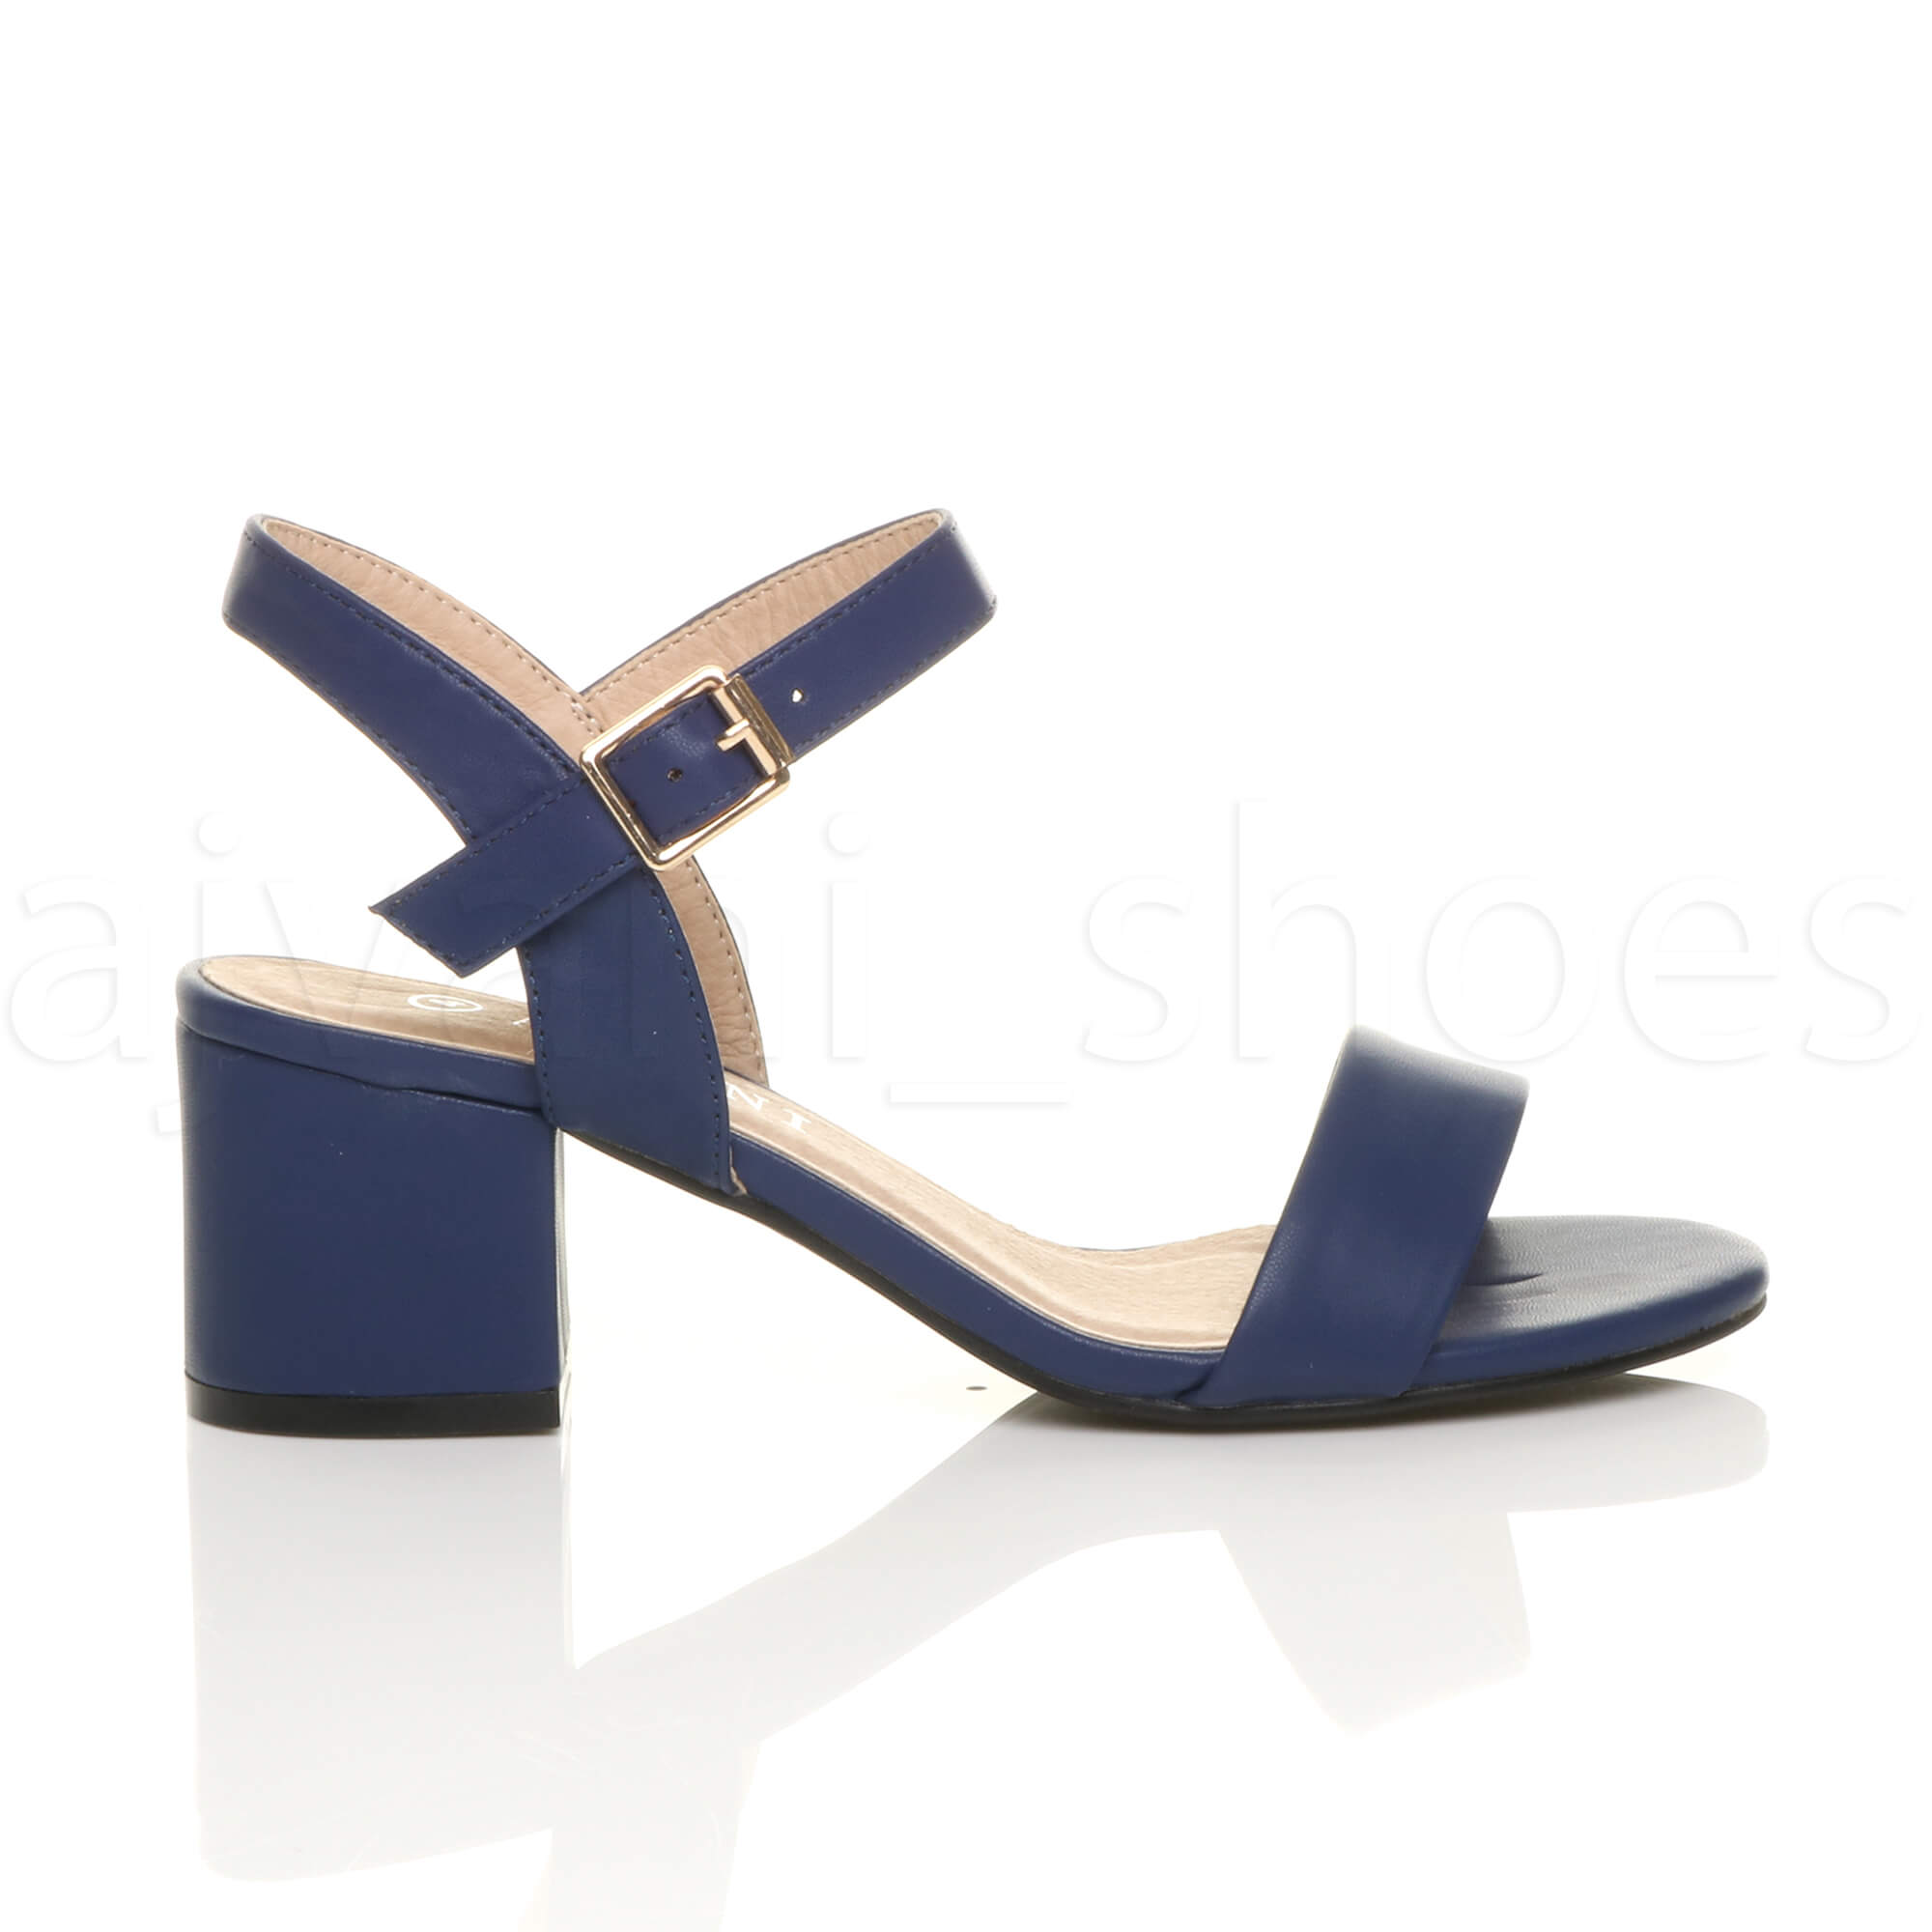 WOMENS-LADIES-MID-LOW-BLOCK-HEEL-PEEP-TOE-ANKLE-STRAP-STRAPPY-PARTY-SANDALS-SIZE thumbnail 83